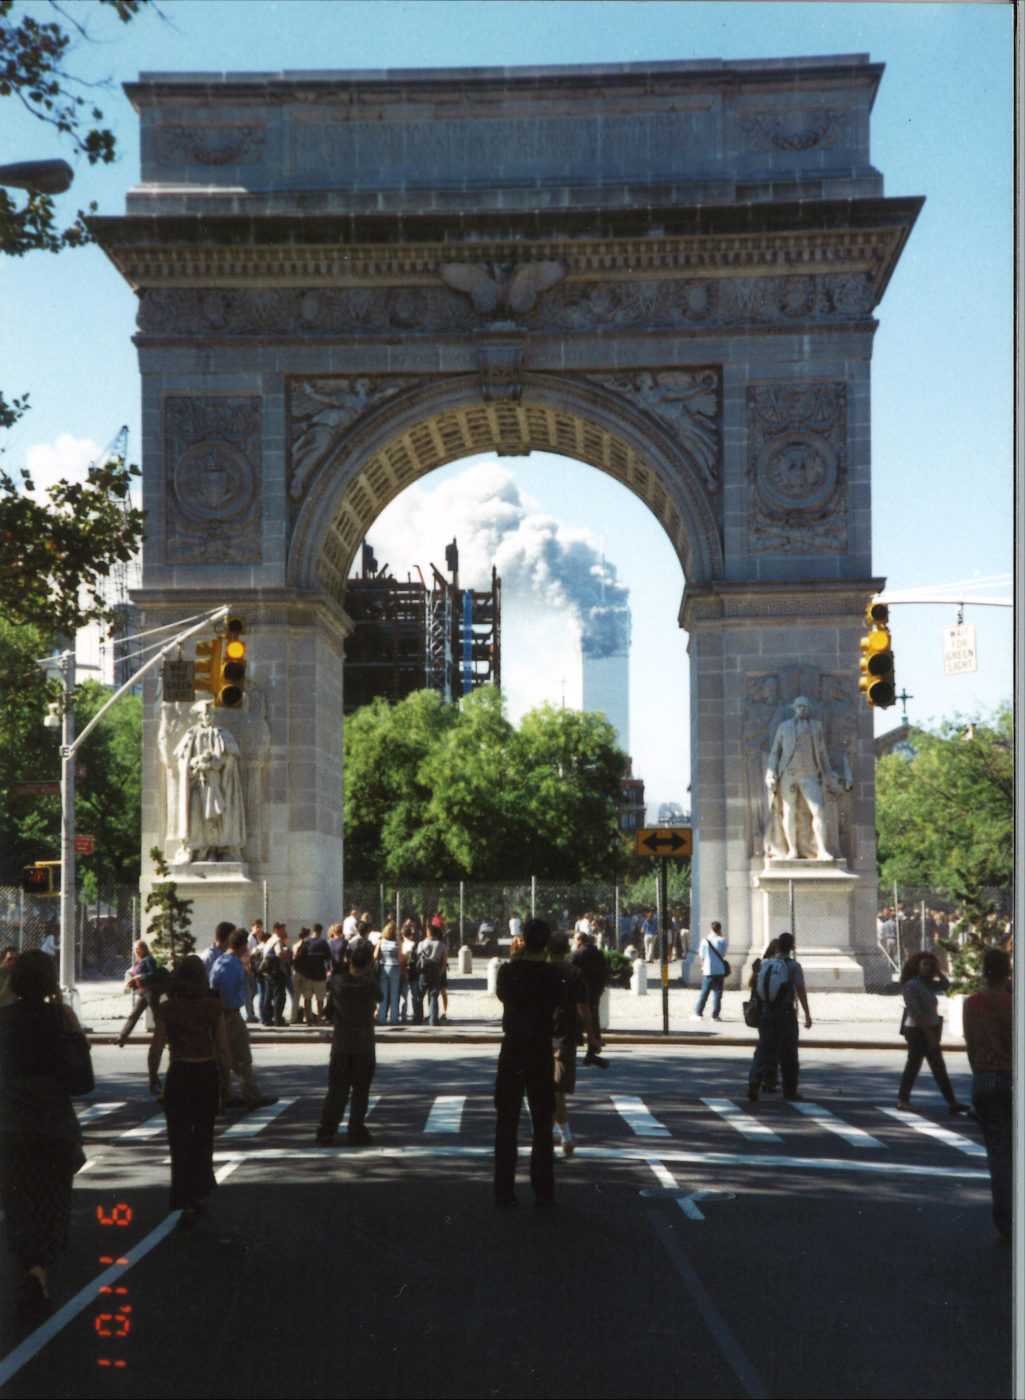 New Yorkers Stand Together Shocked Tower Looking Through the Arch Looking Down 5th Avenue 1 Burning after Collapse of Tower 2.jpg